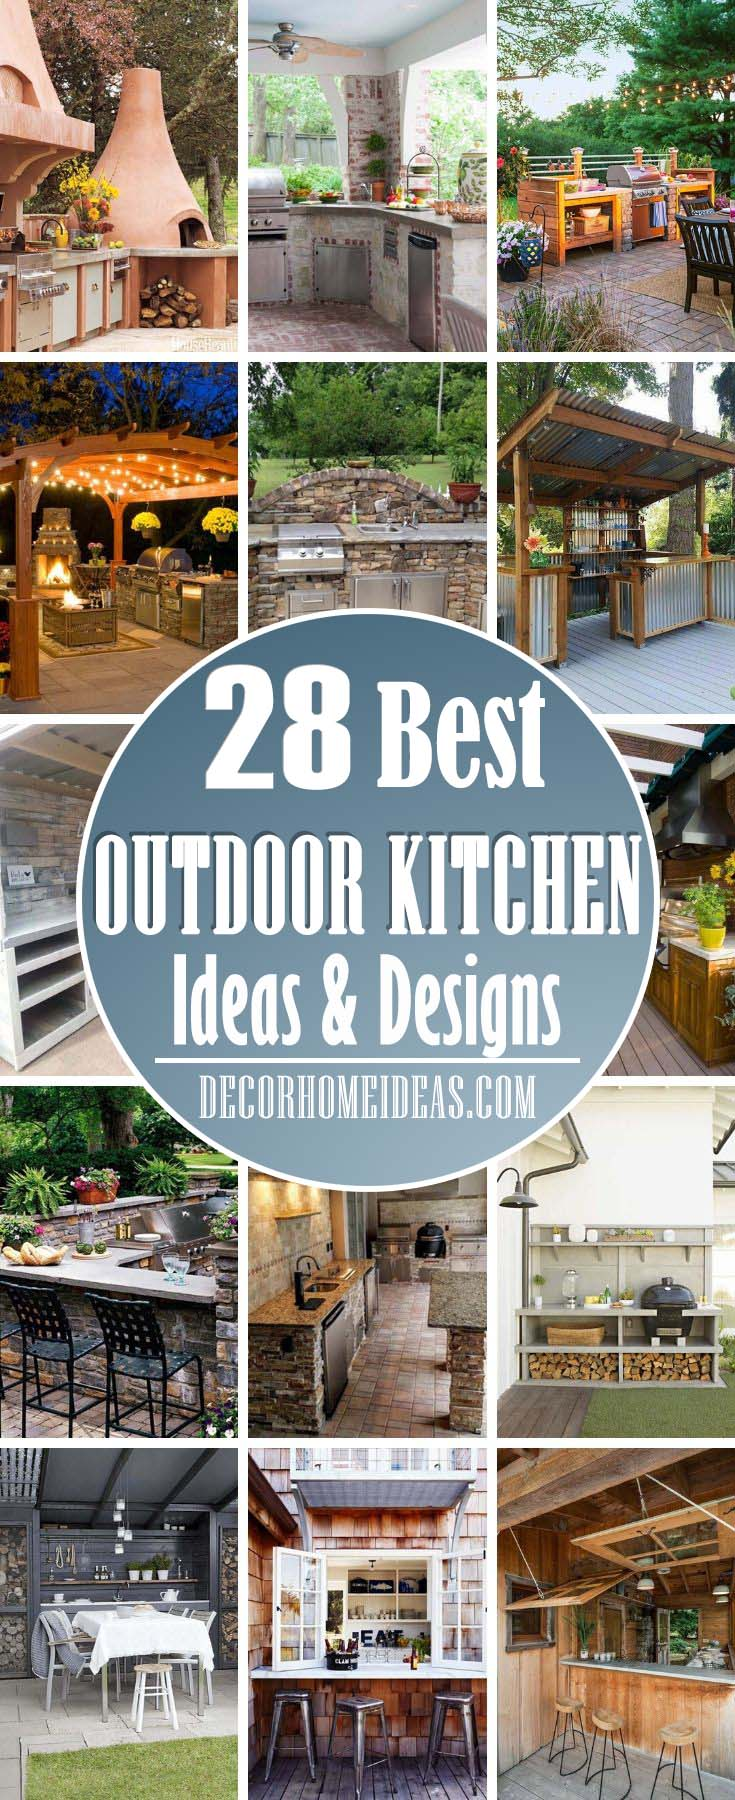 Best Outdoor Kitchen Ideas And Designsл Get our best ideas for outdoor kitchens, including charming outdoor kitchen decor, backyard decorating ideas, and pictures of outdoor kitchens.